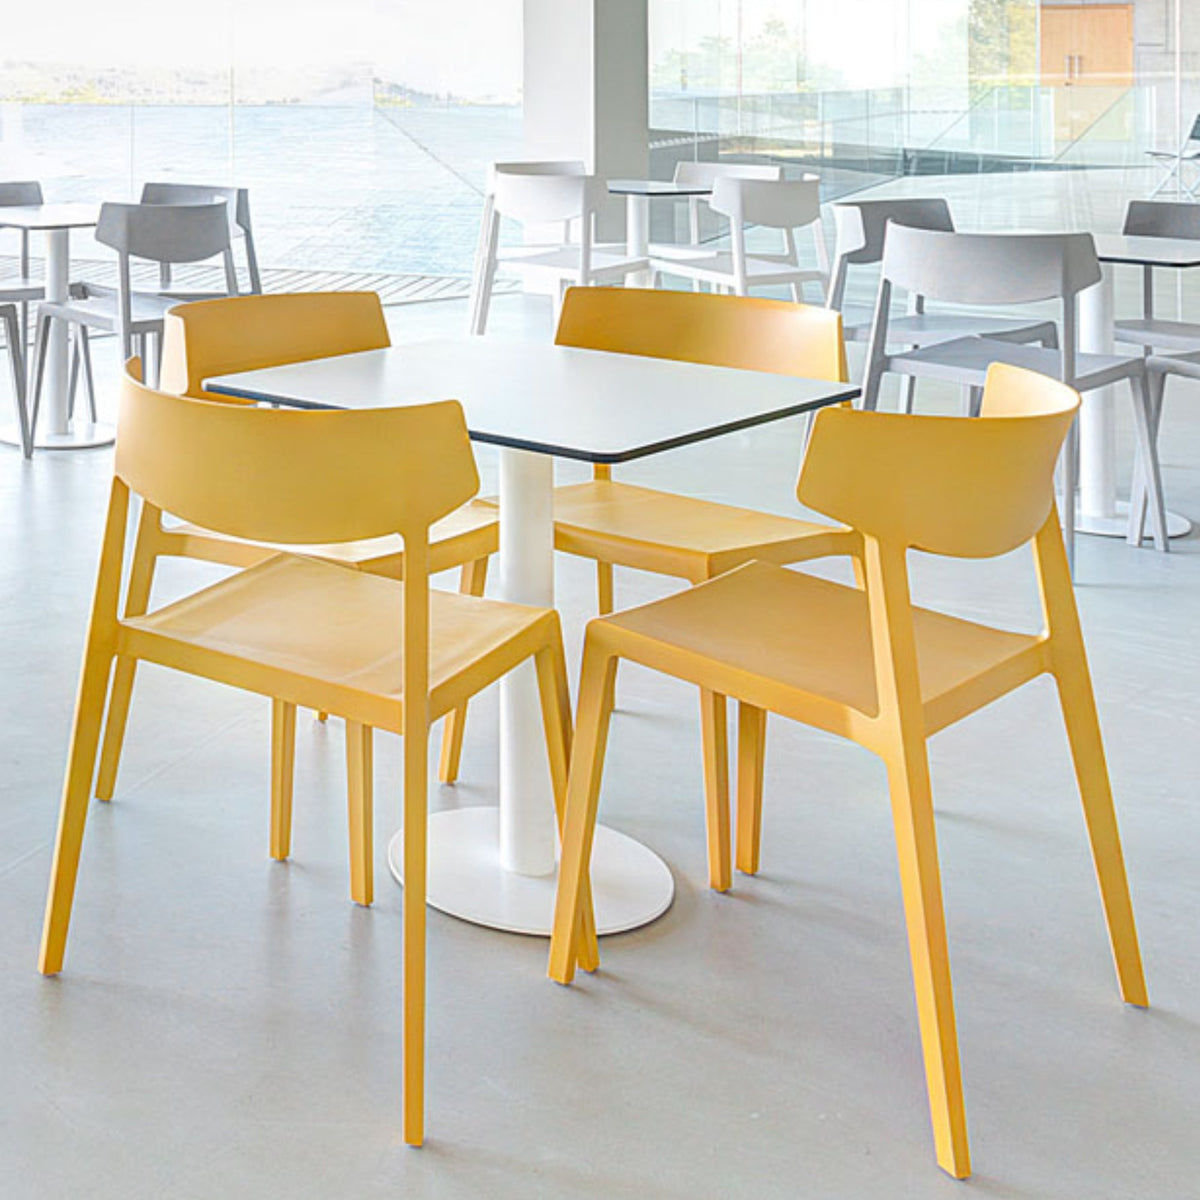 Actiu - Wing Stackable Chair - Set of Four - Mustard - Pack of 4 Chairs